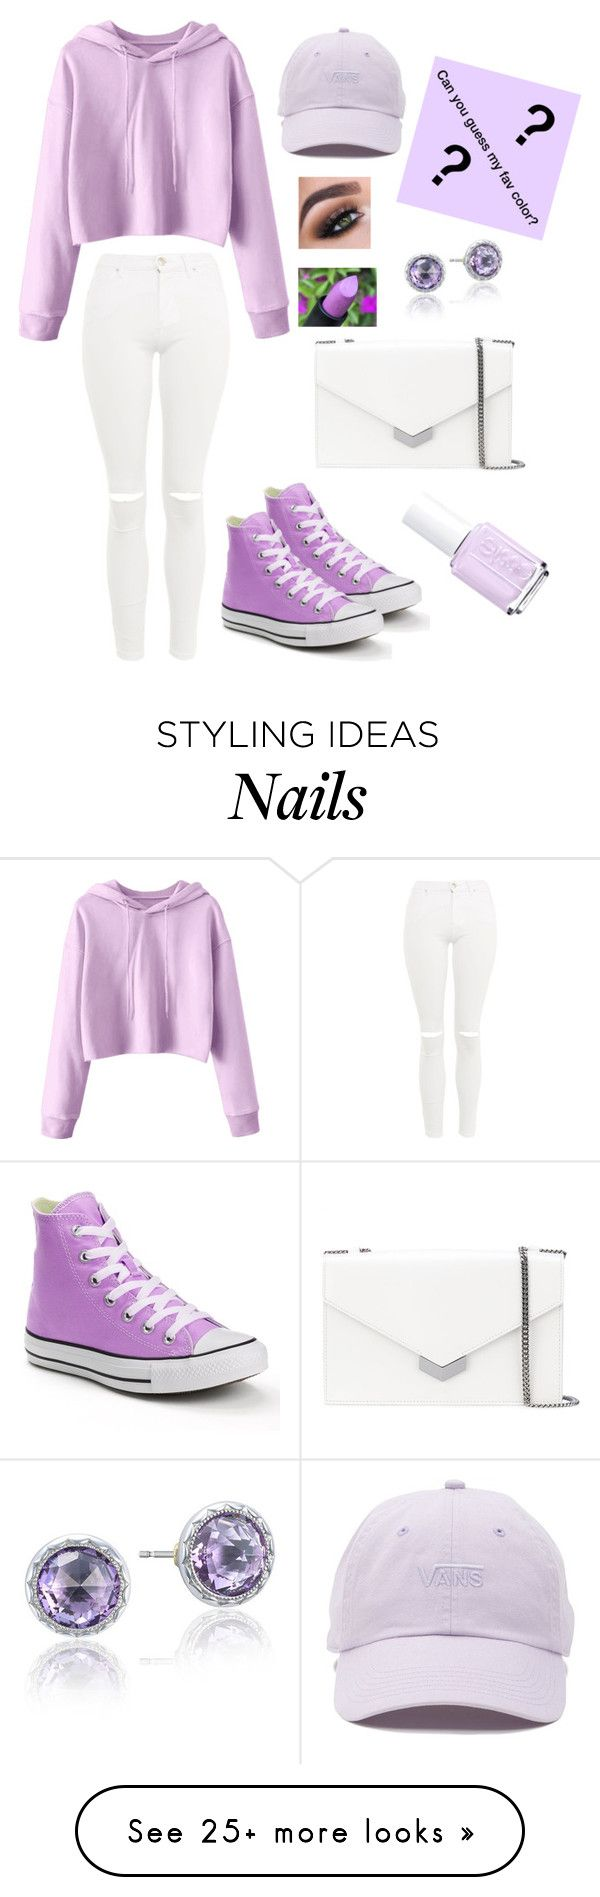 """Never too much Purple"" by lover-of-tea on Polyvore featuring Topshop, Converse, Jimmy Choo, Essie, Vans and Tacori"